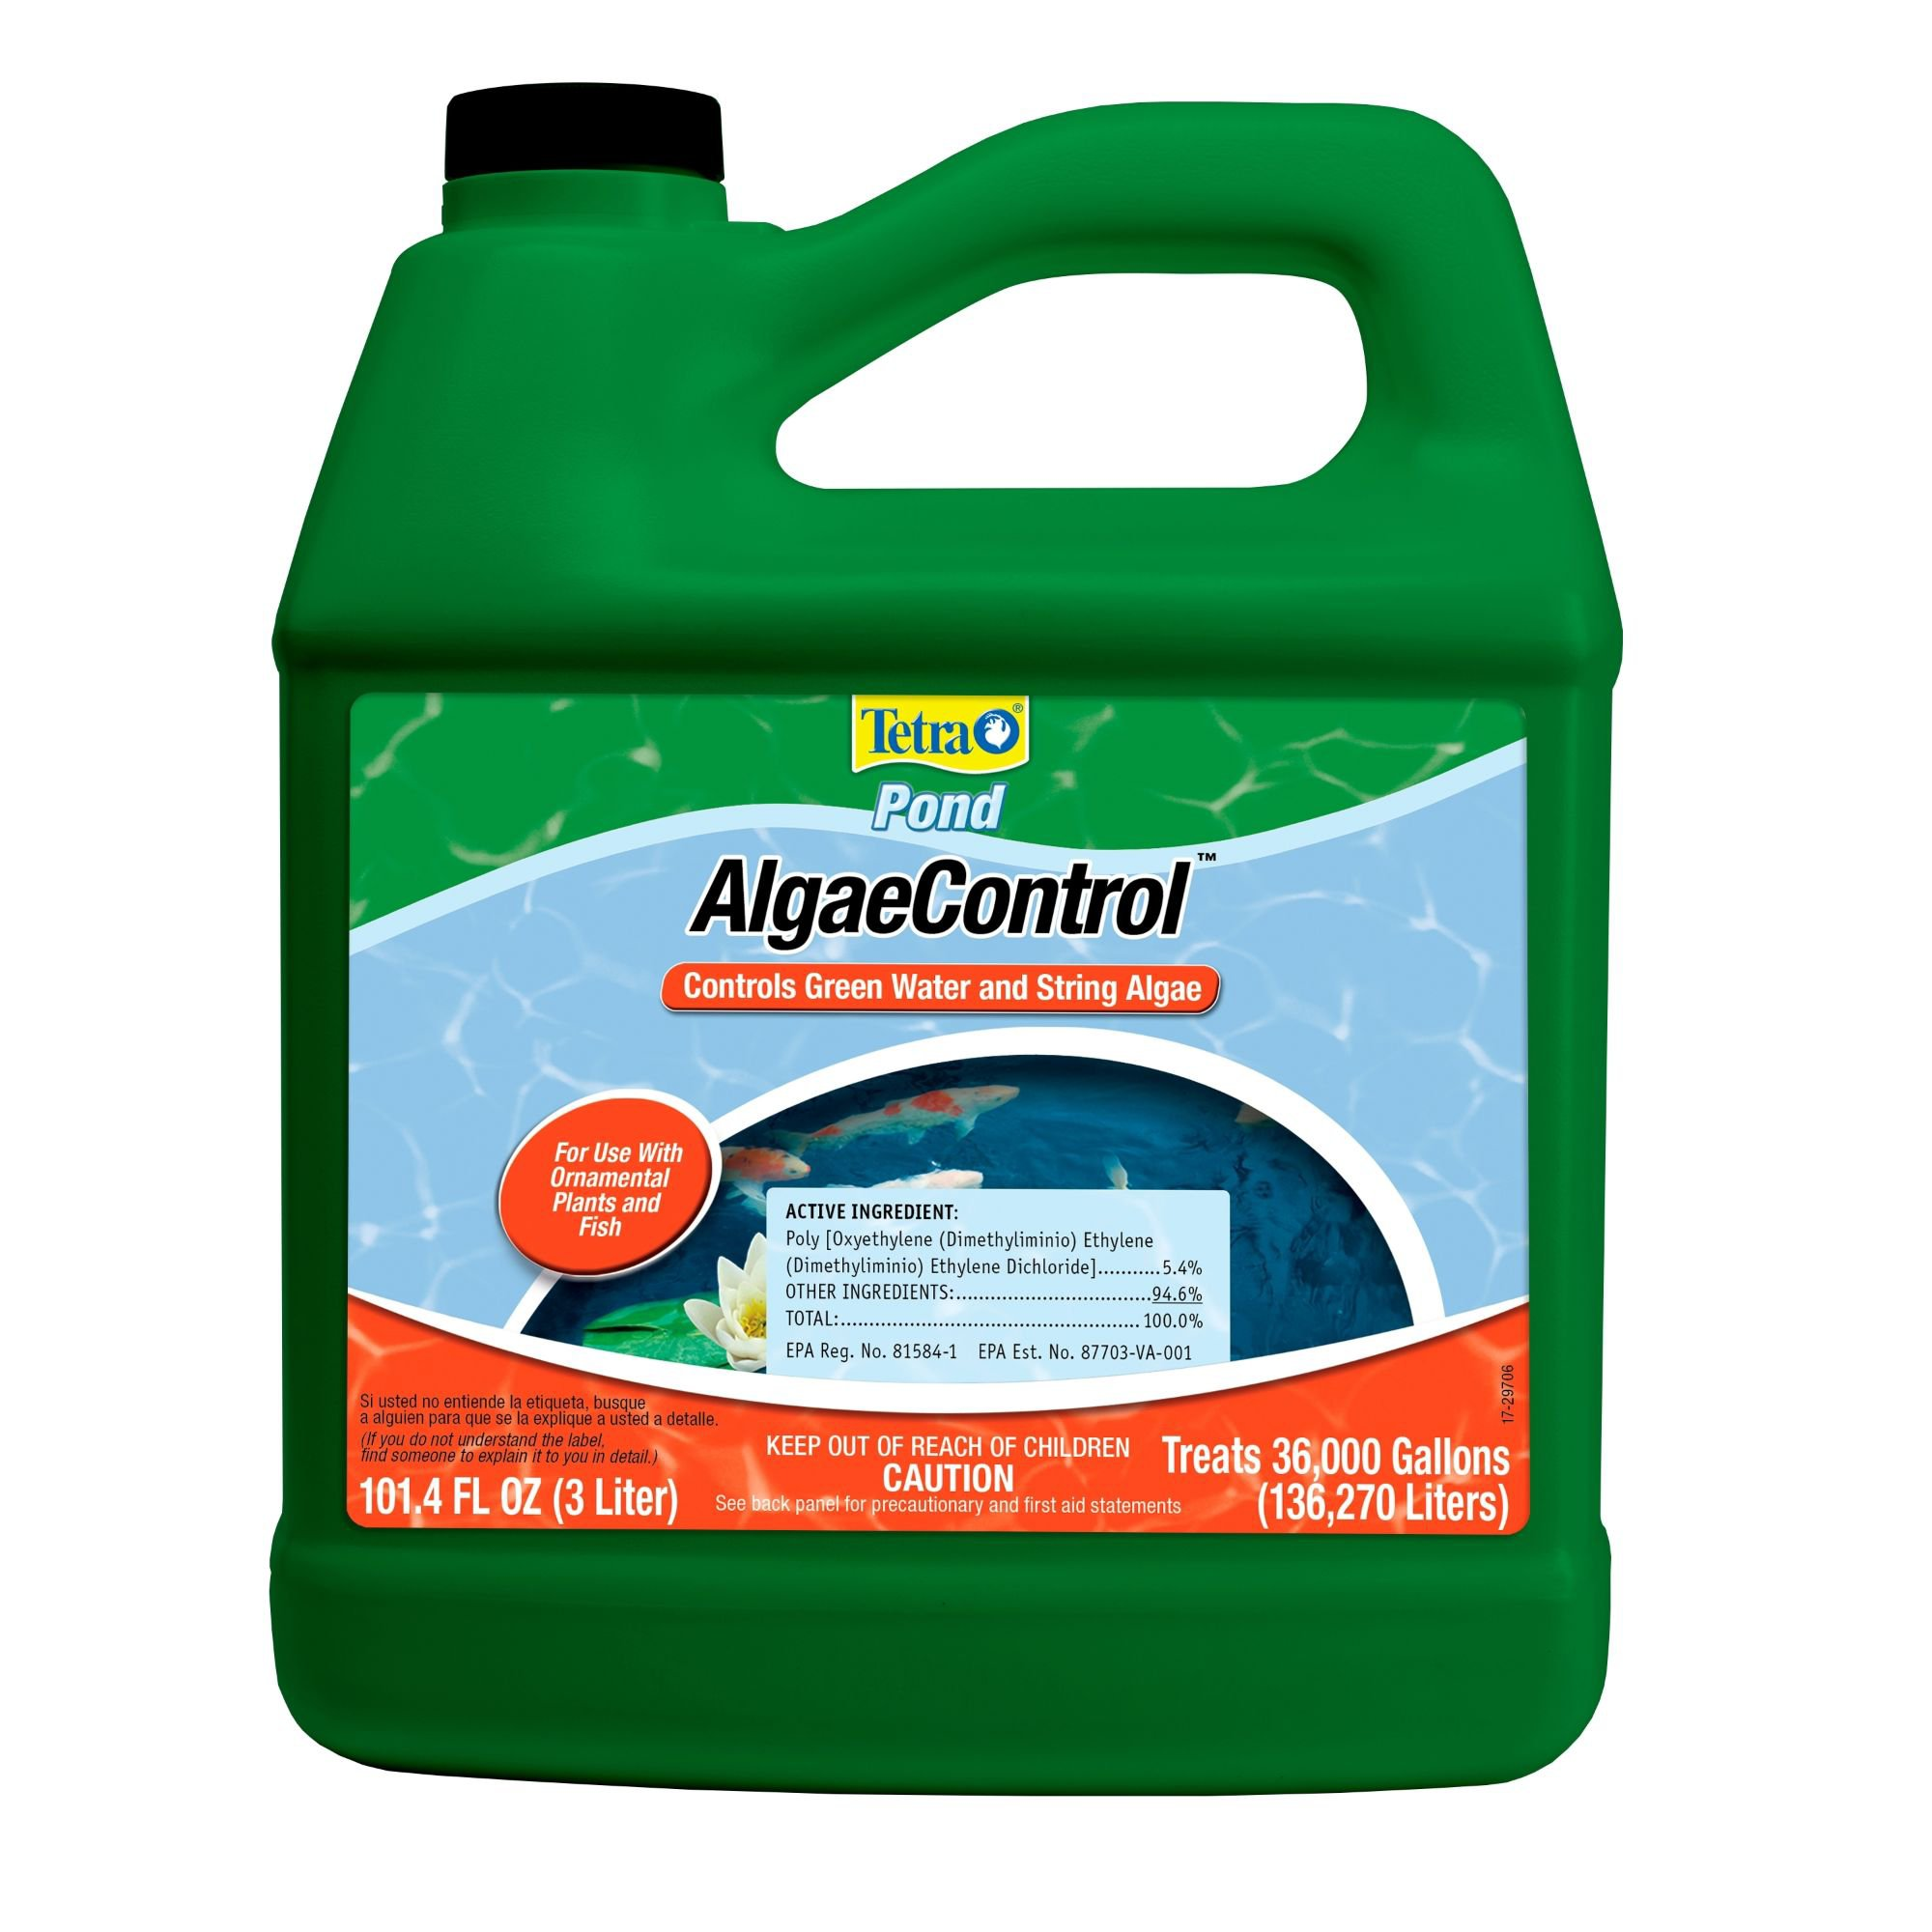 Tetrapond algae control pond algae remover petco for Koi pond removal